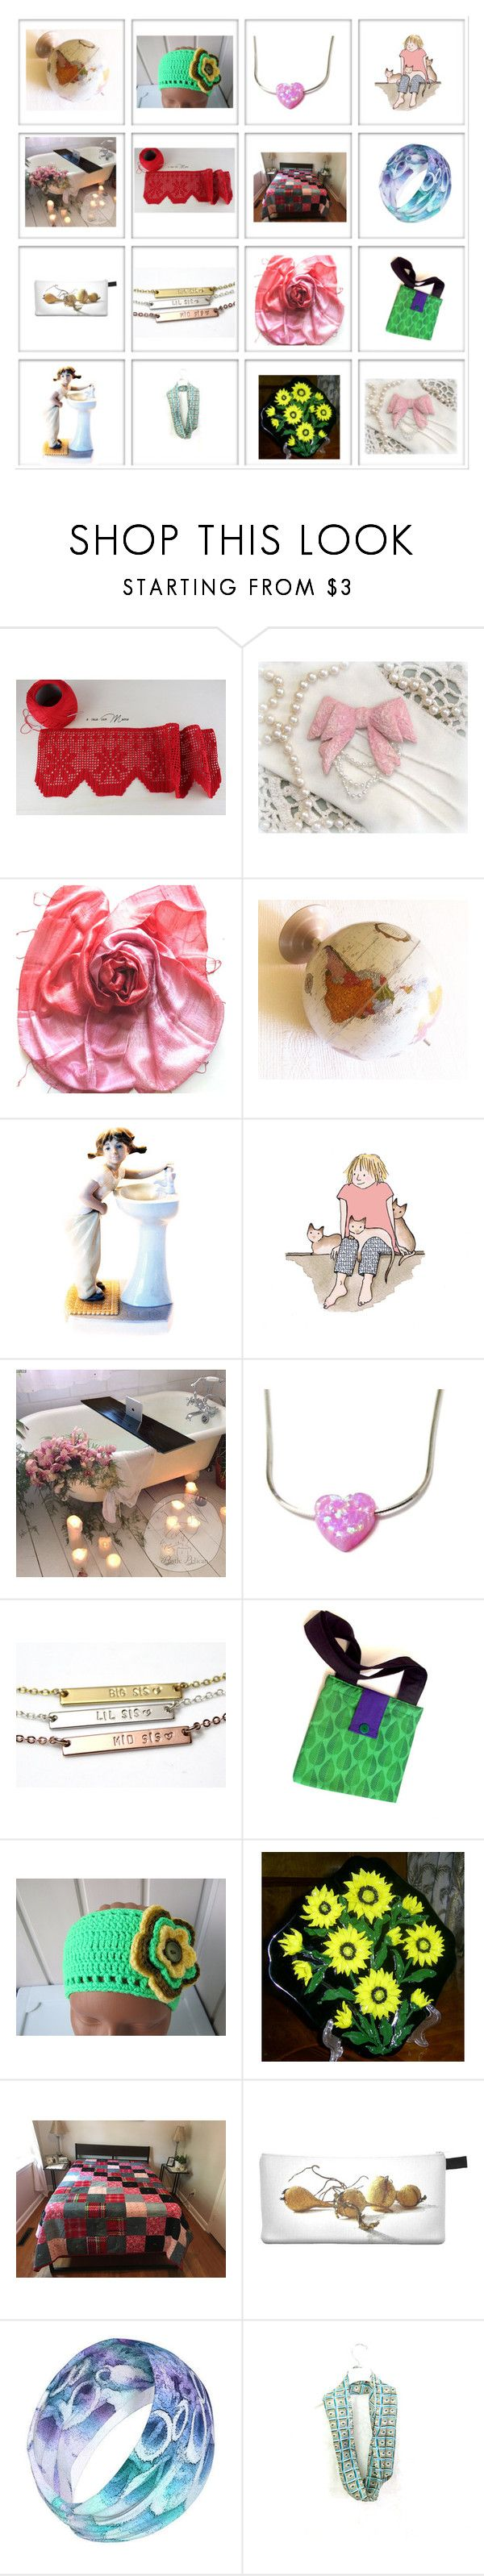 Collezione Etsy by acasaconmanu on Polyvore featuring interior, interiors, interior design, home, home decor, interior decorating and Lladró